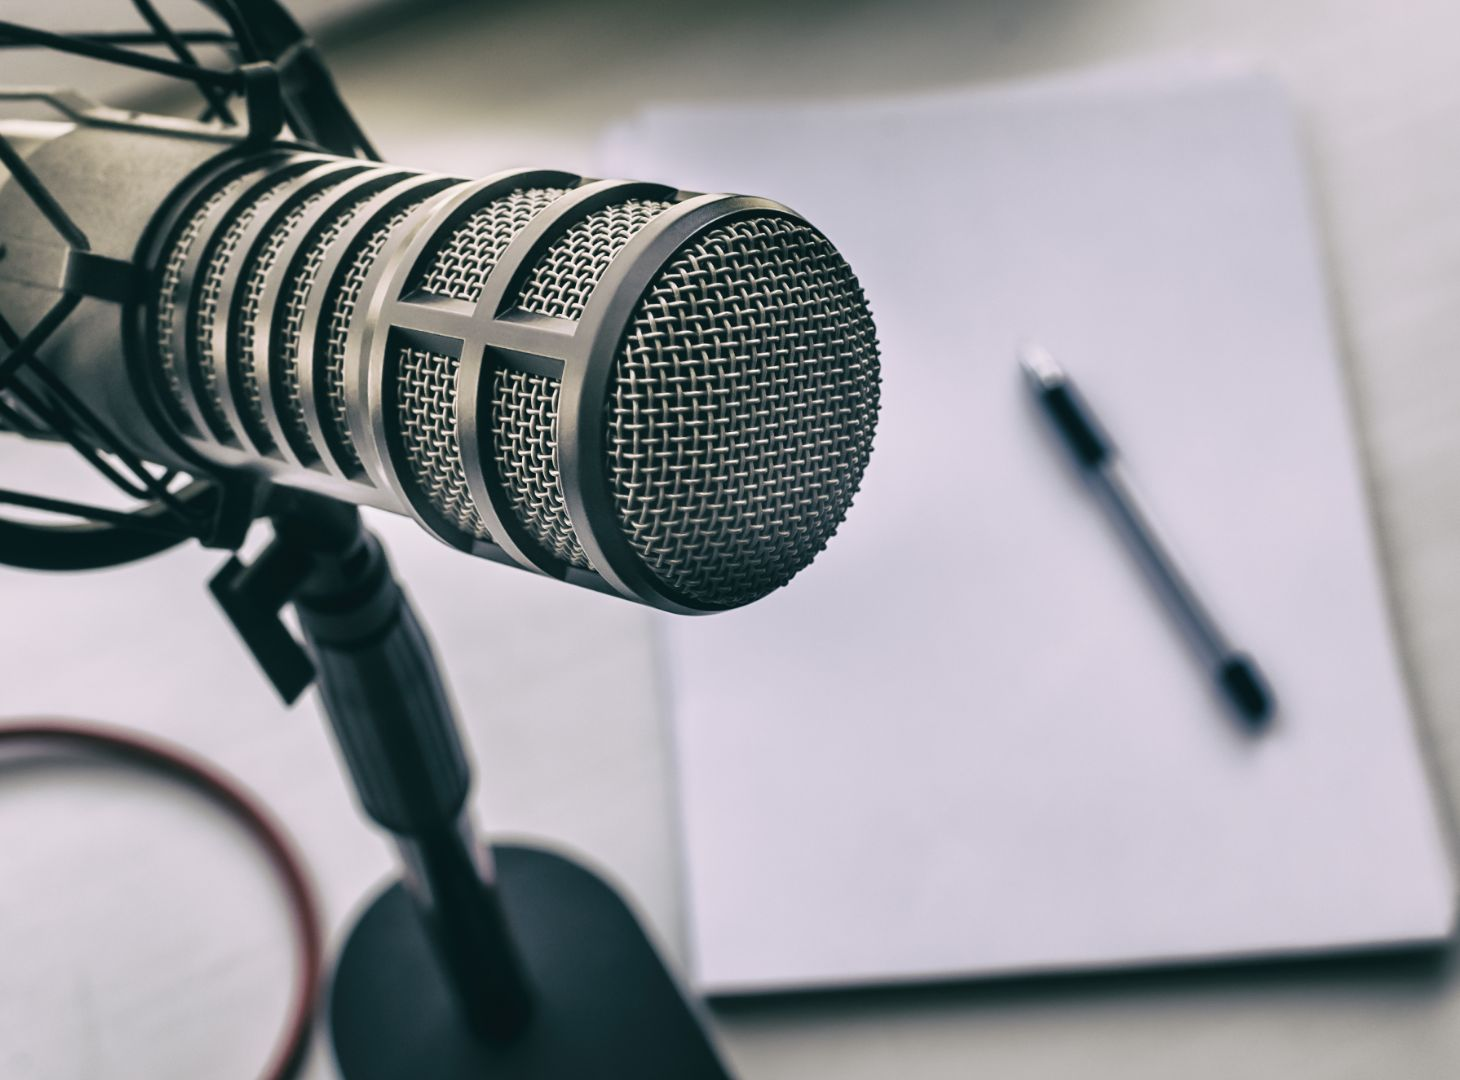 Microphone with pen and paper below it